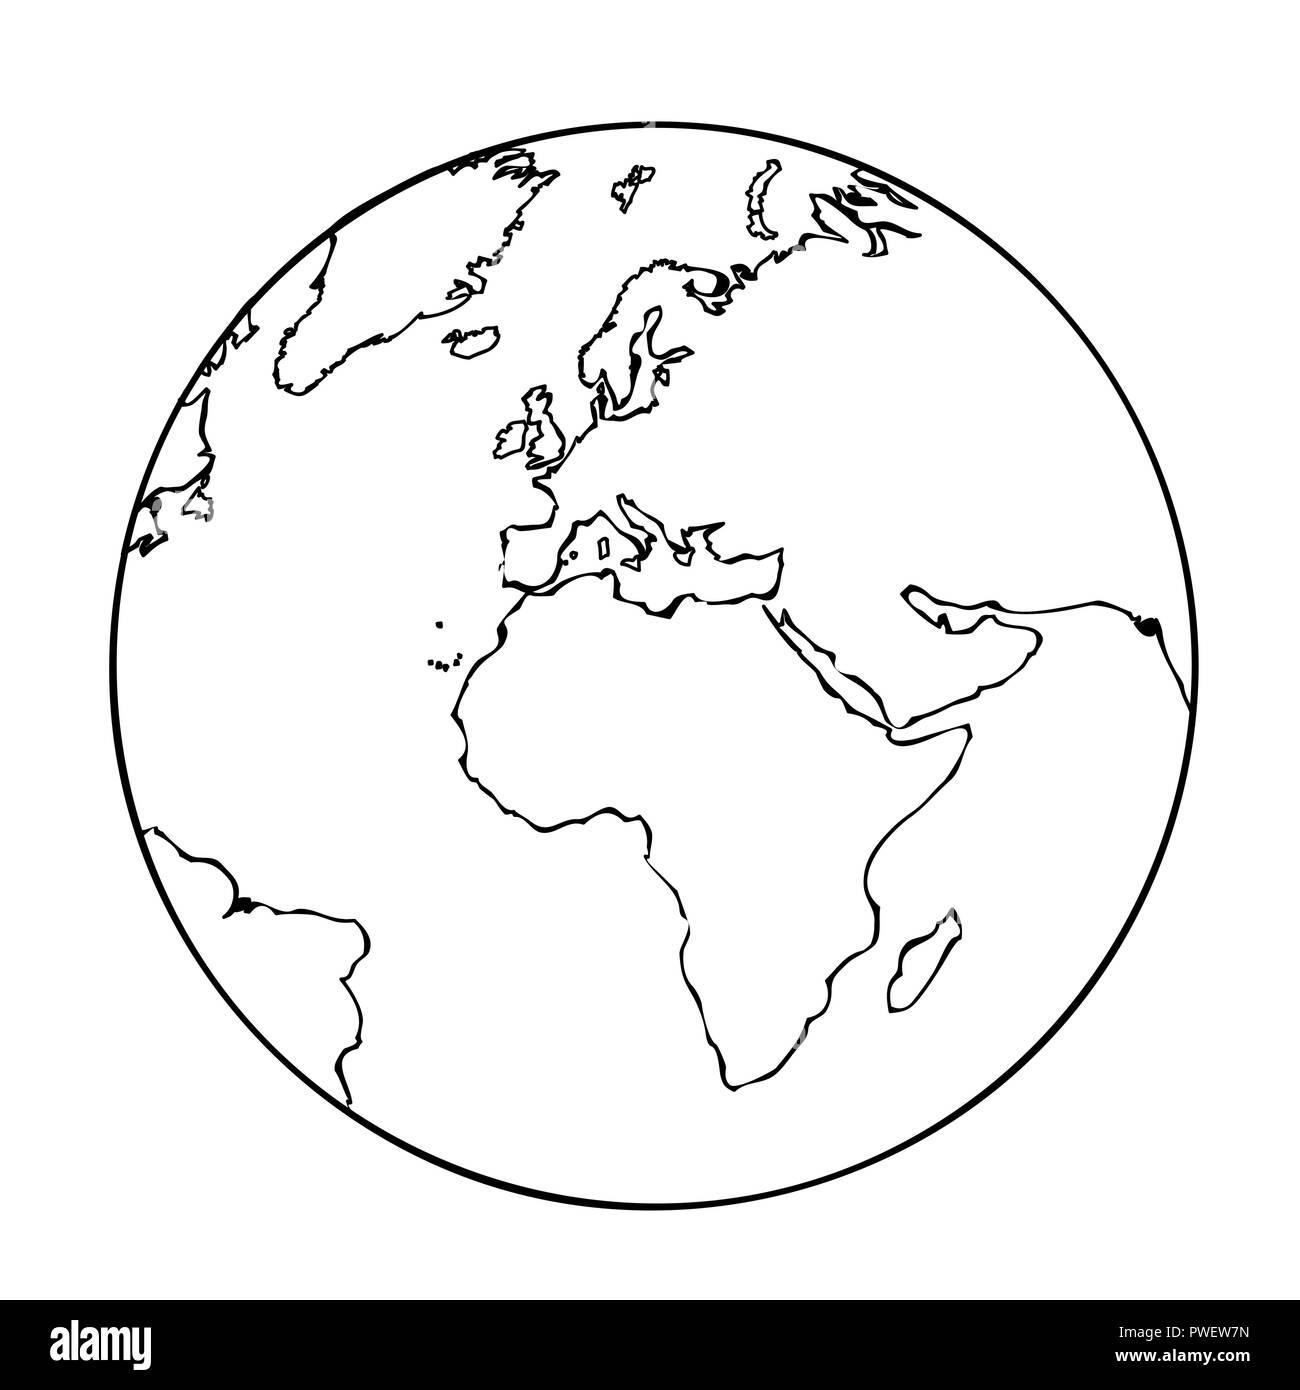 earth globe simple icon pictogram outline vector illustration - Stock Image